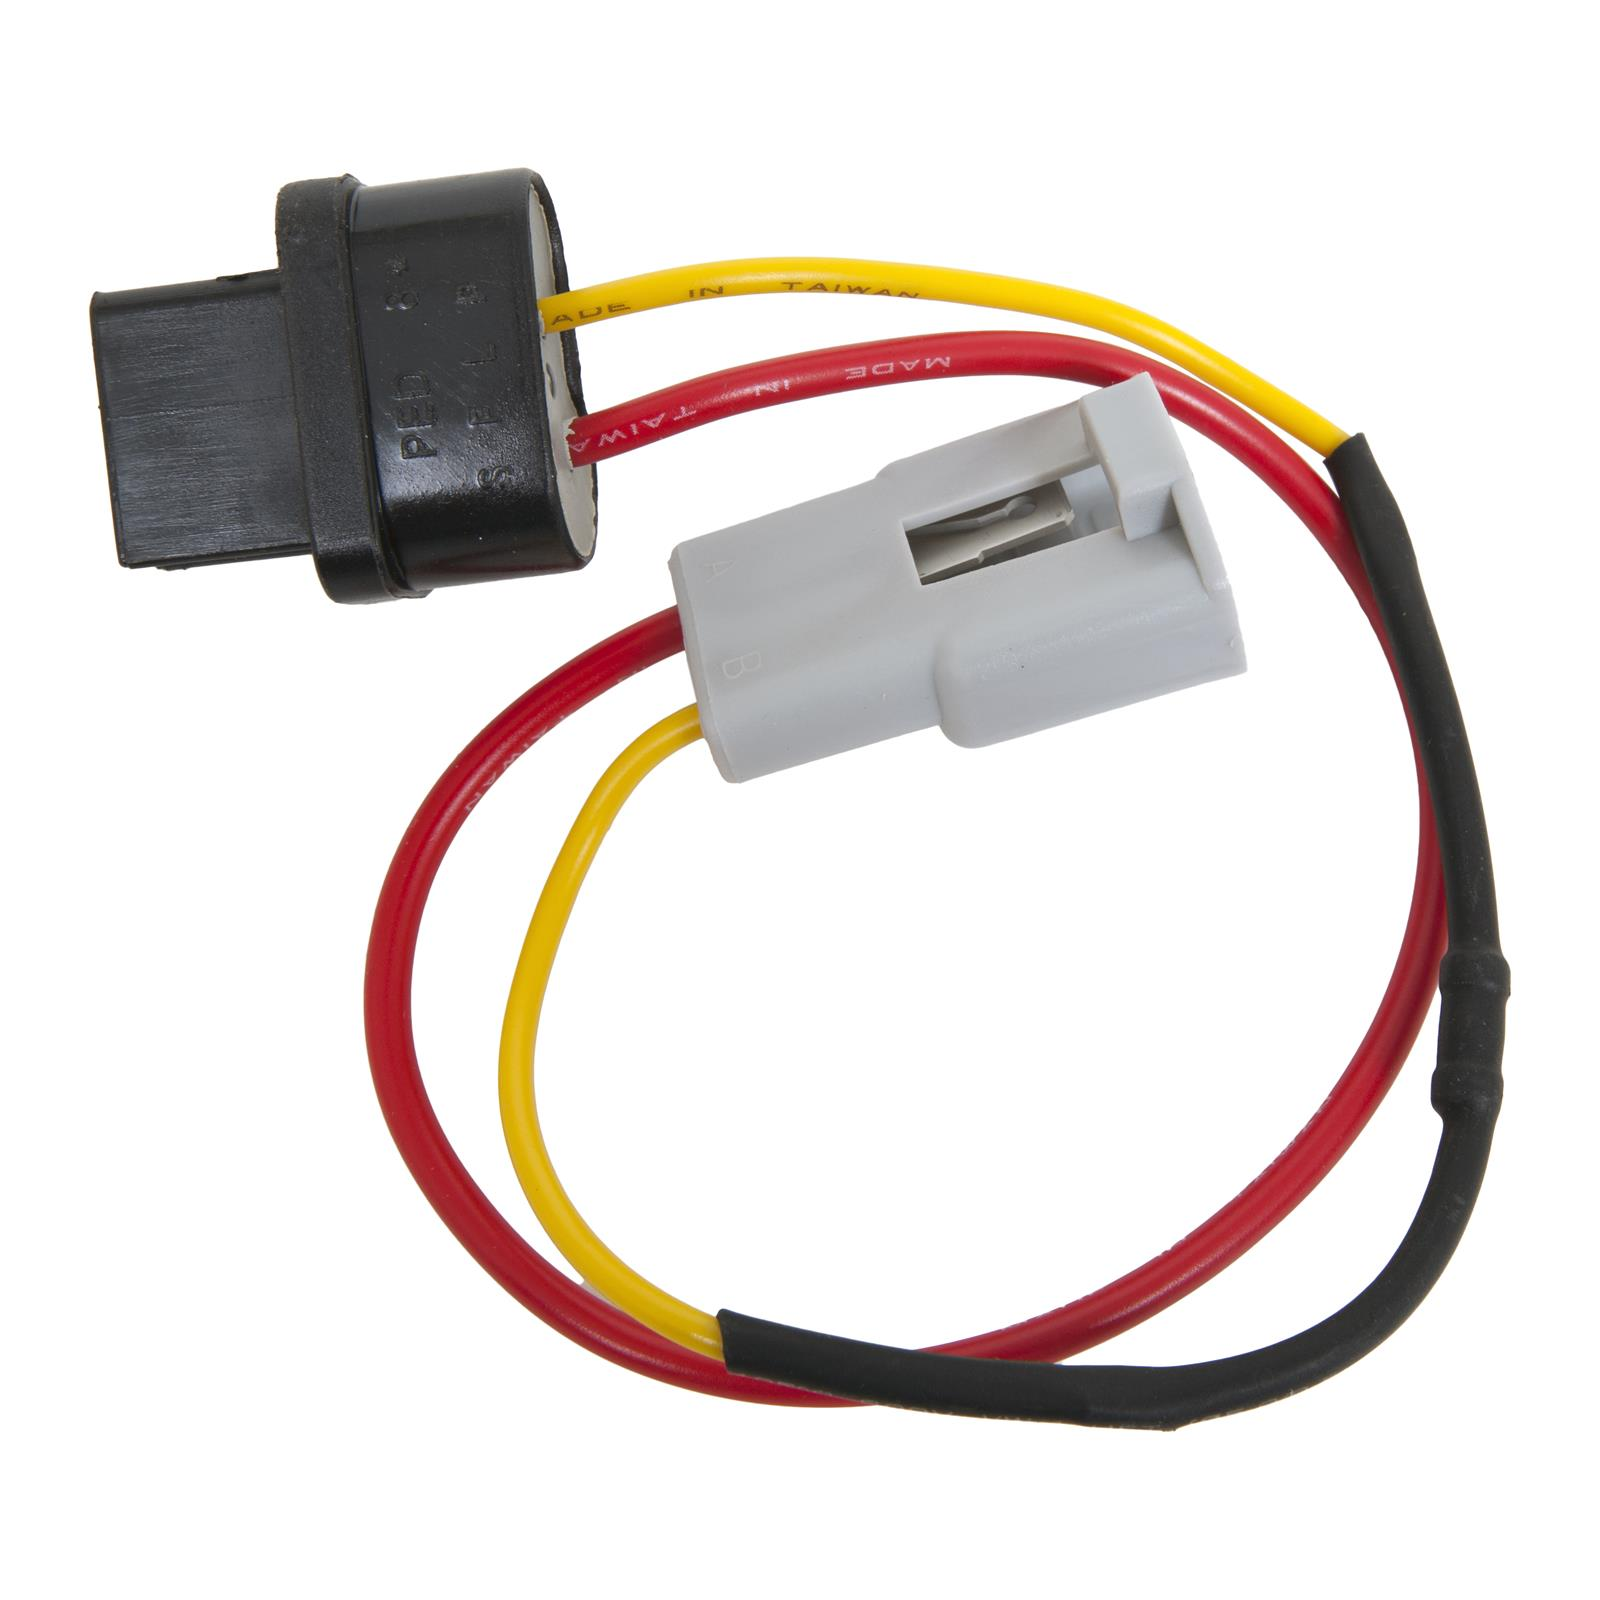 ado pt2145_xl acdelco replacement wiring harness connectors pt2145 free Automotive Wire Connectors at bayanpartner.co